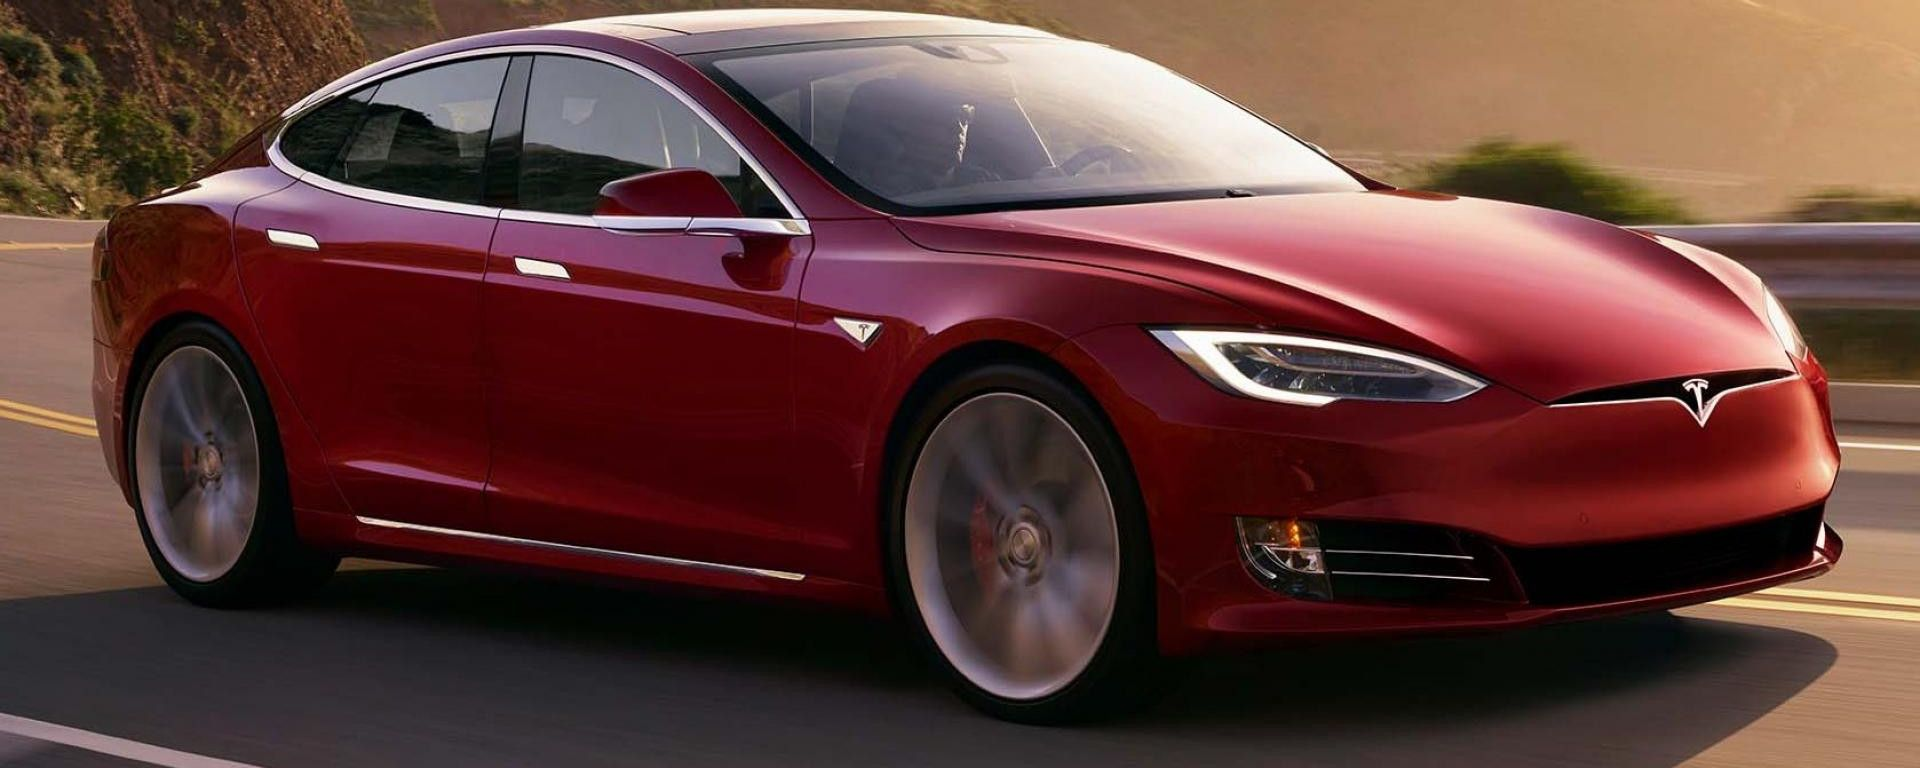 Tesla Model S: fallito test su frenata autonoma